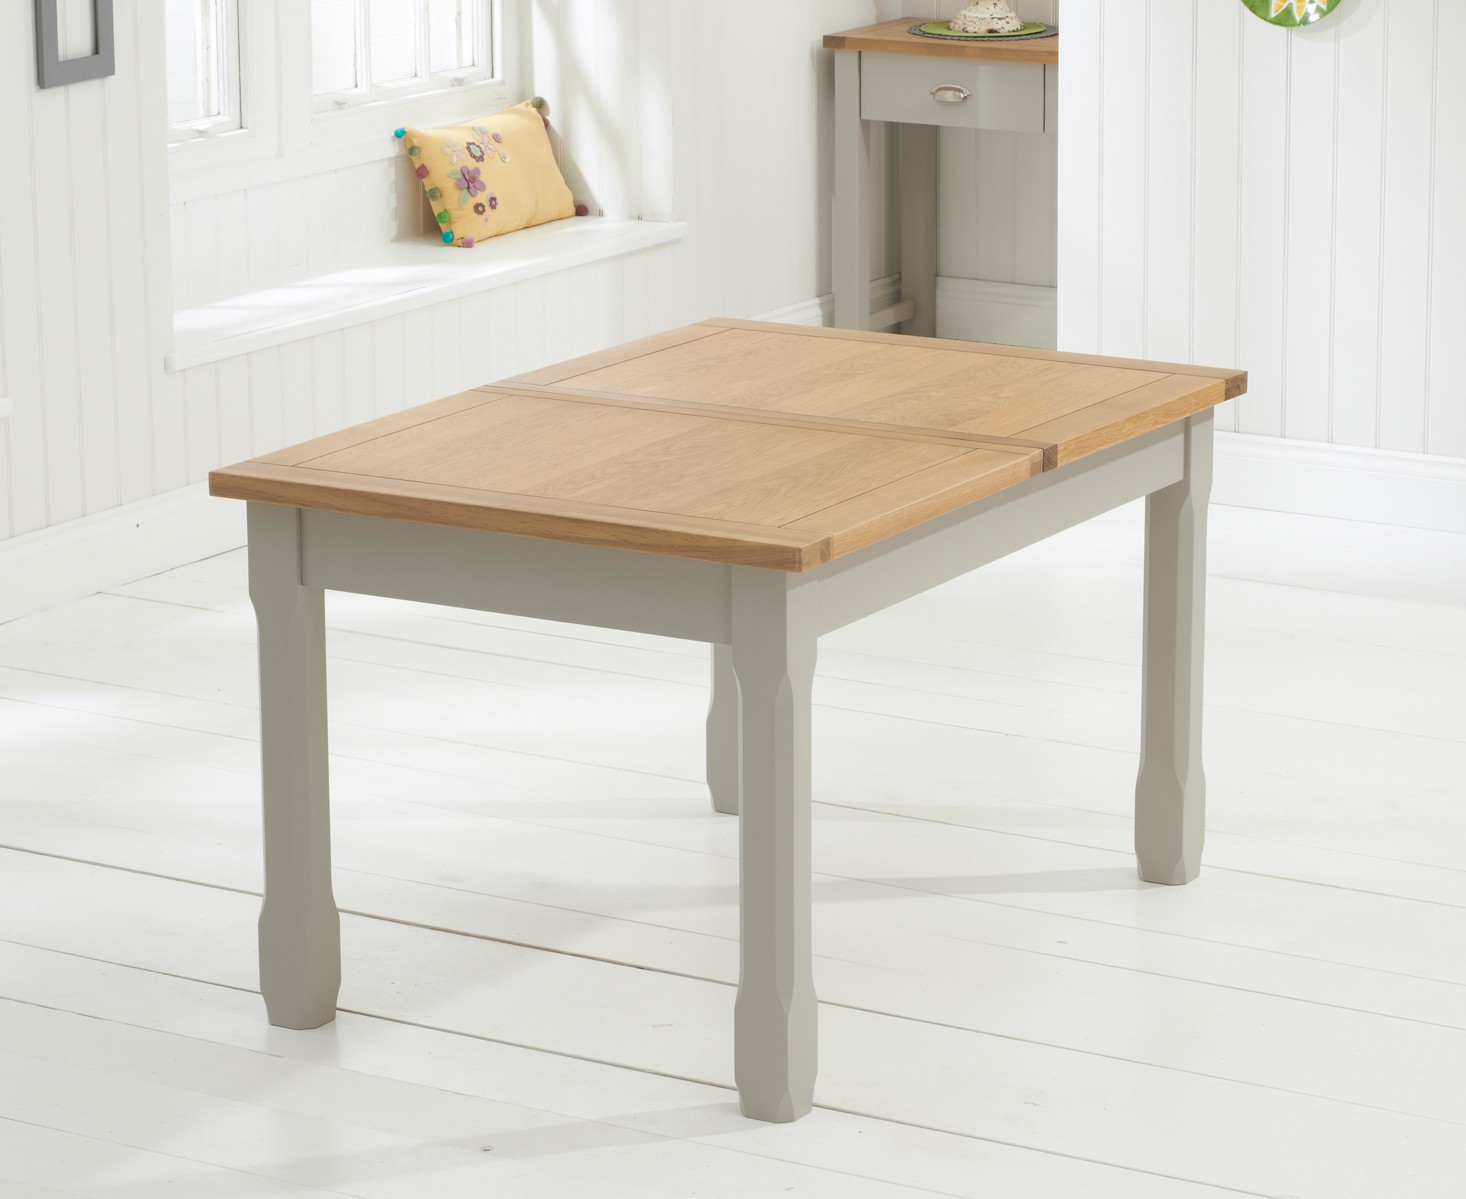 Sandringham Ext. 186cm Oak and Painted Grey Rectangular Dining Table